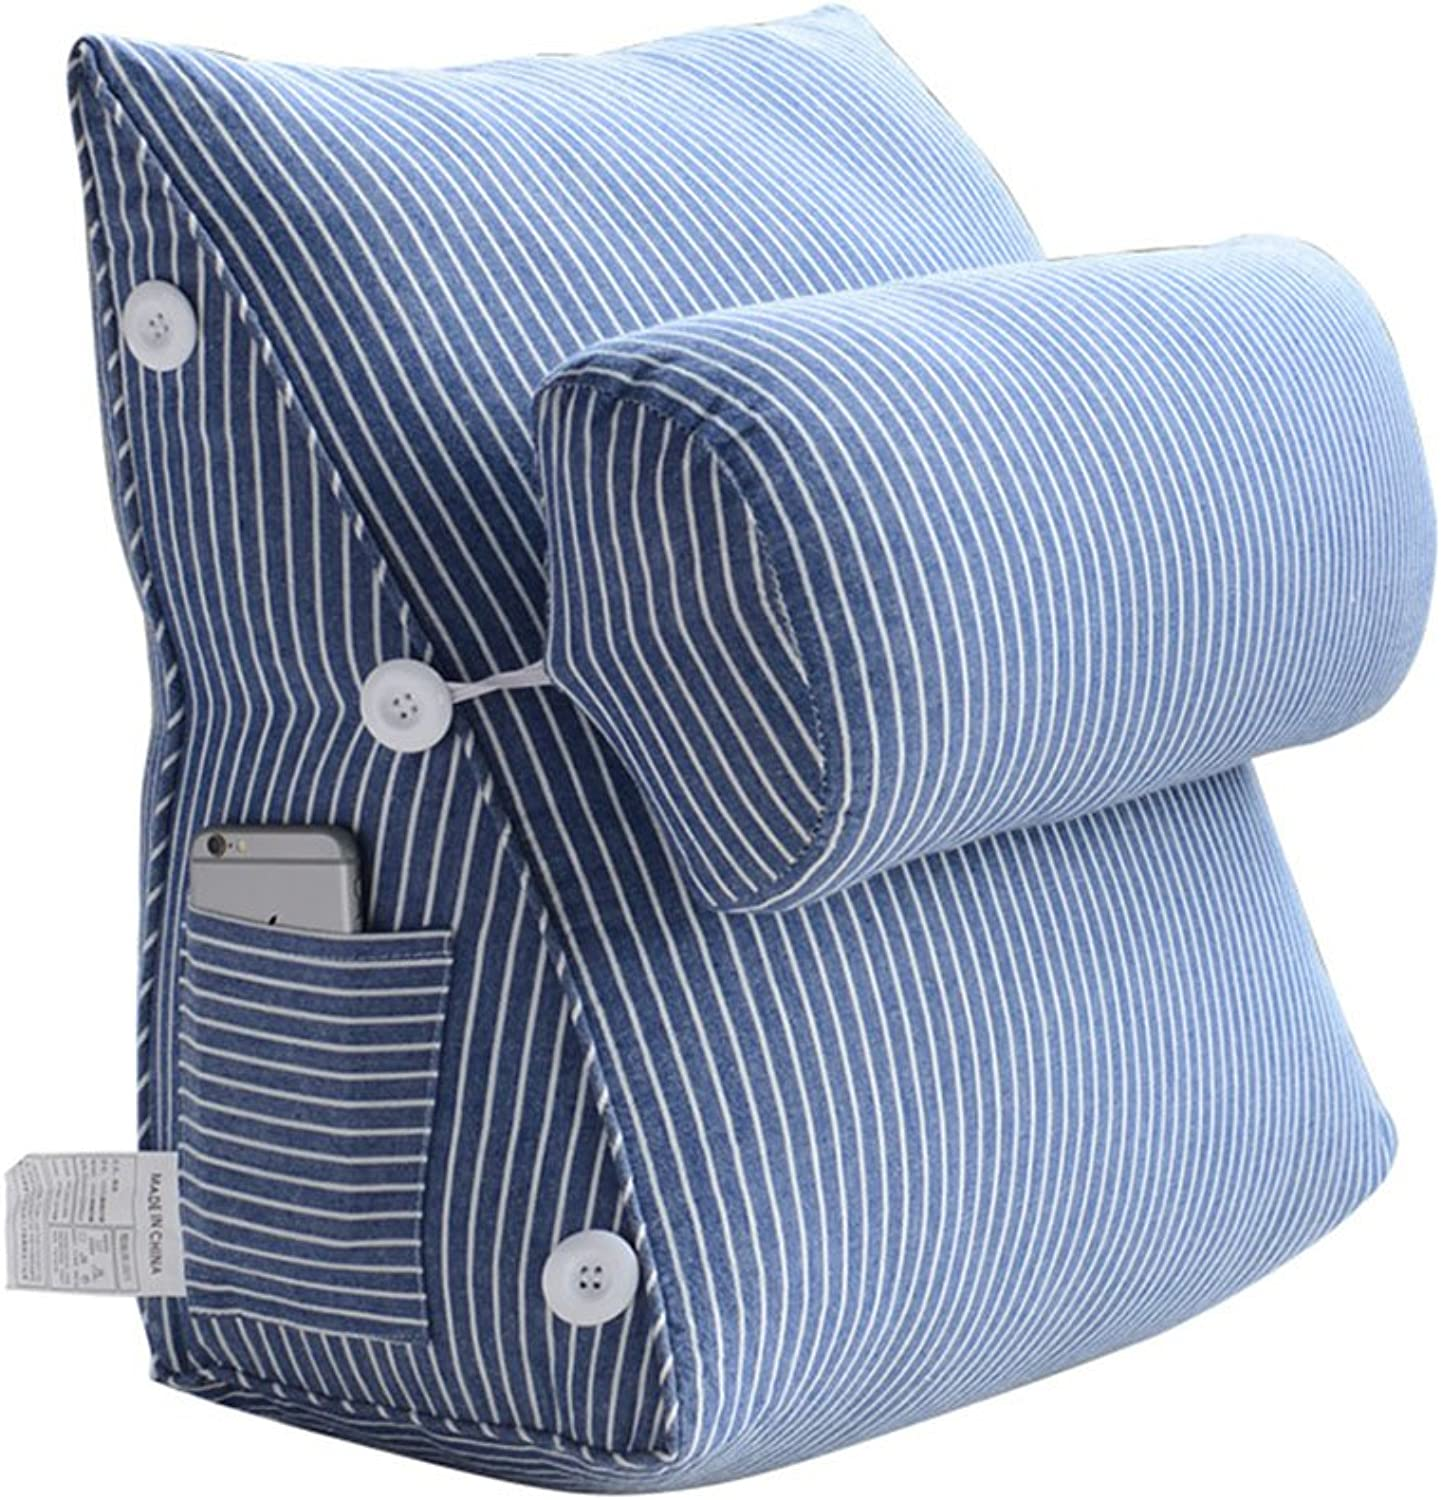 Cushion Cotton Headboard Pillow, Office Waist Belt Pillow, Sofa seat Triangle Cushion (color   bluee, Size   582250cm)